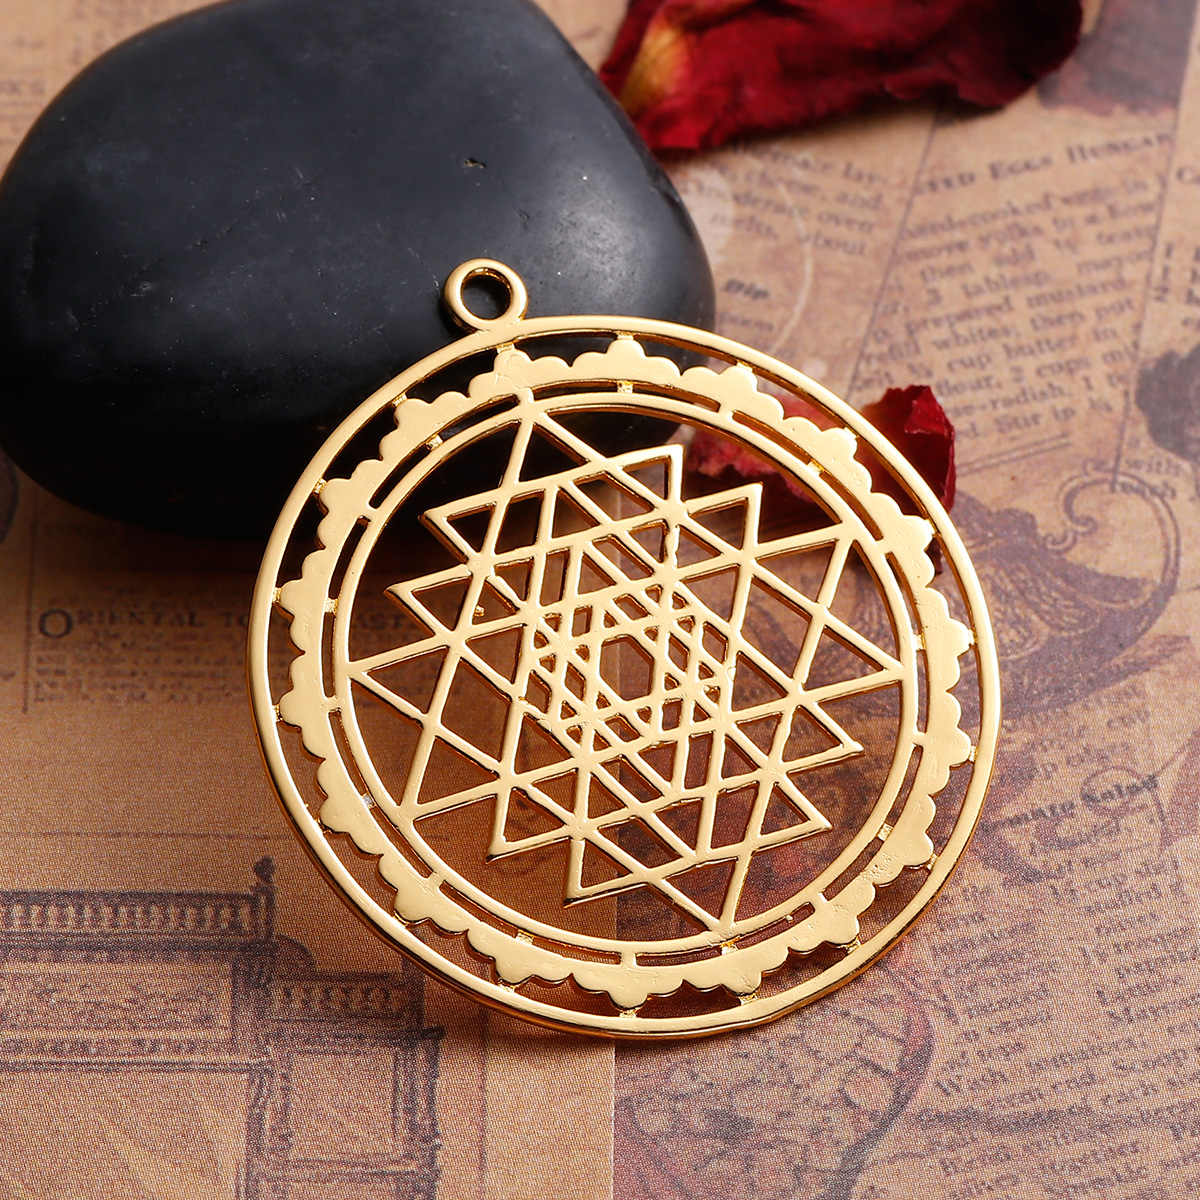 LASPERAL Gold /Silver Color Hollow Sri Yantra Pattern Pendant Fit DIY Necklace Jewelry Making Life Tree Shaped Pendant New